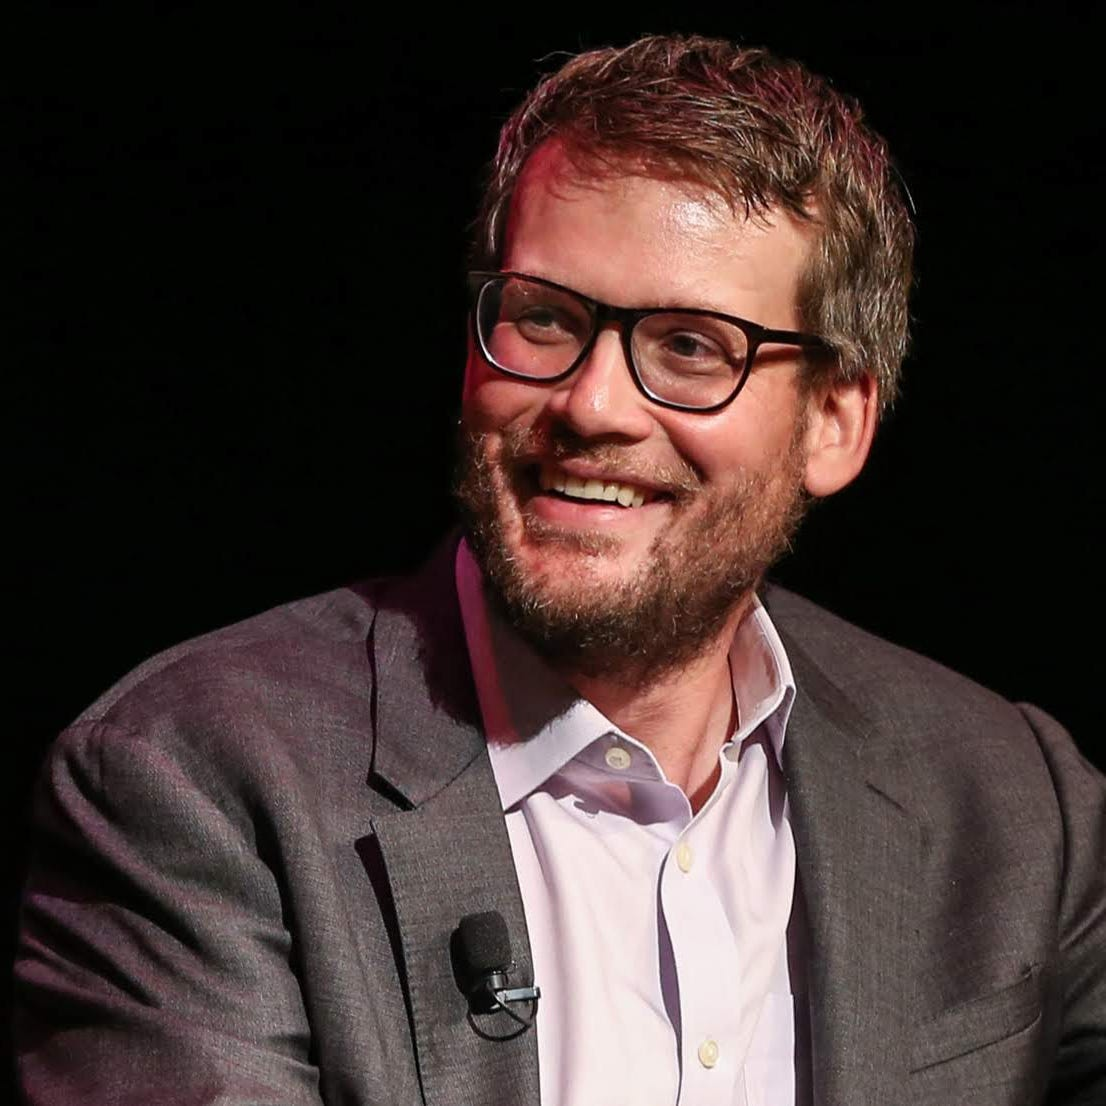 John Green swore off social media for a year. One month in, here are five things he's learned.